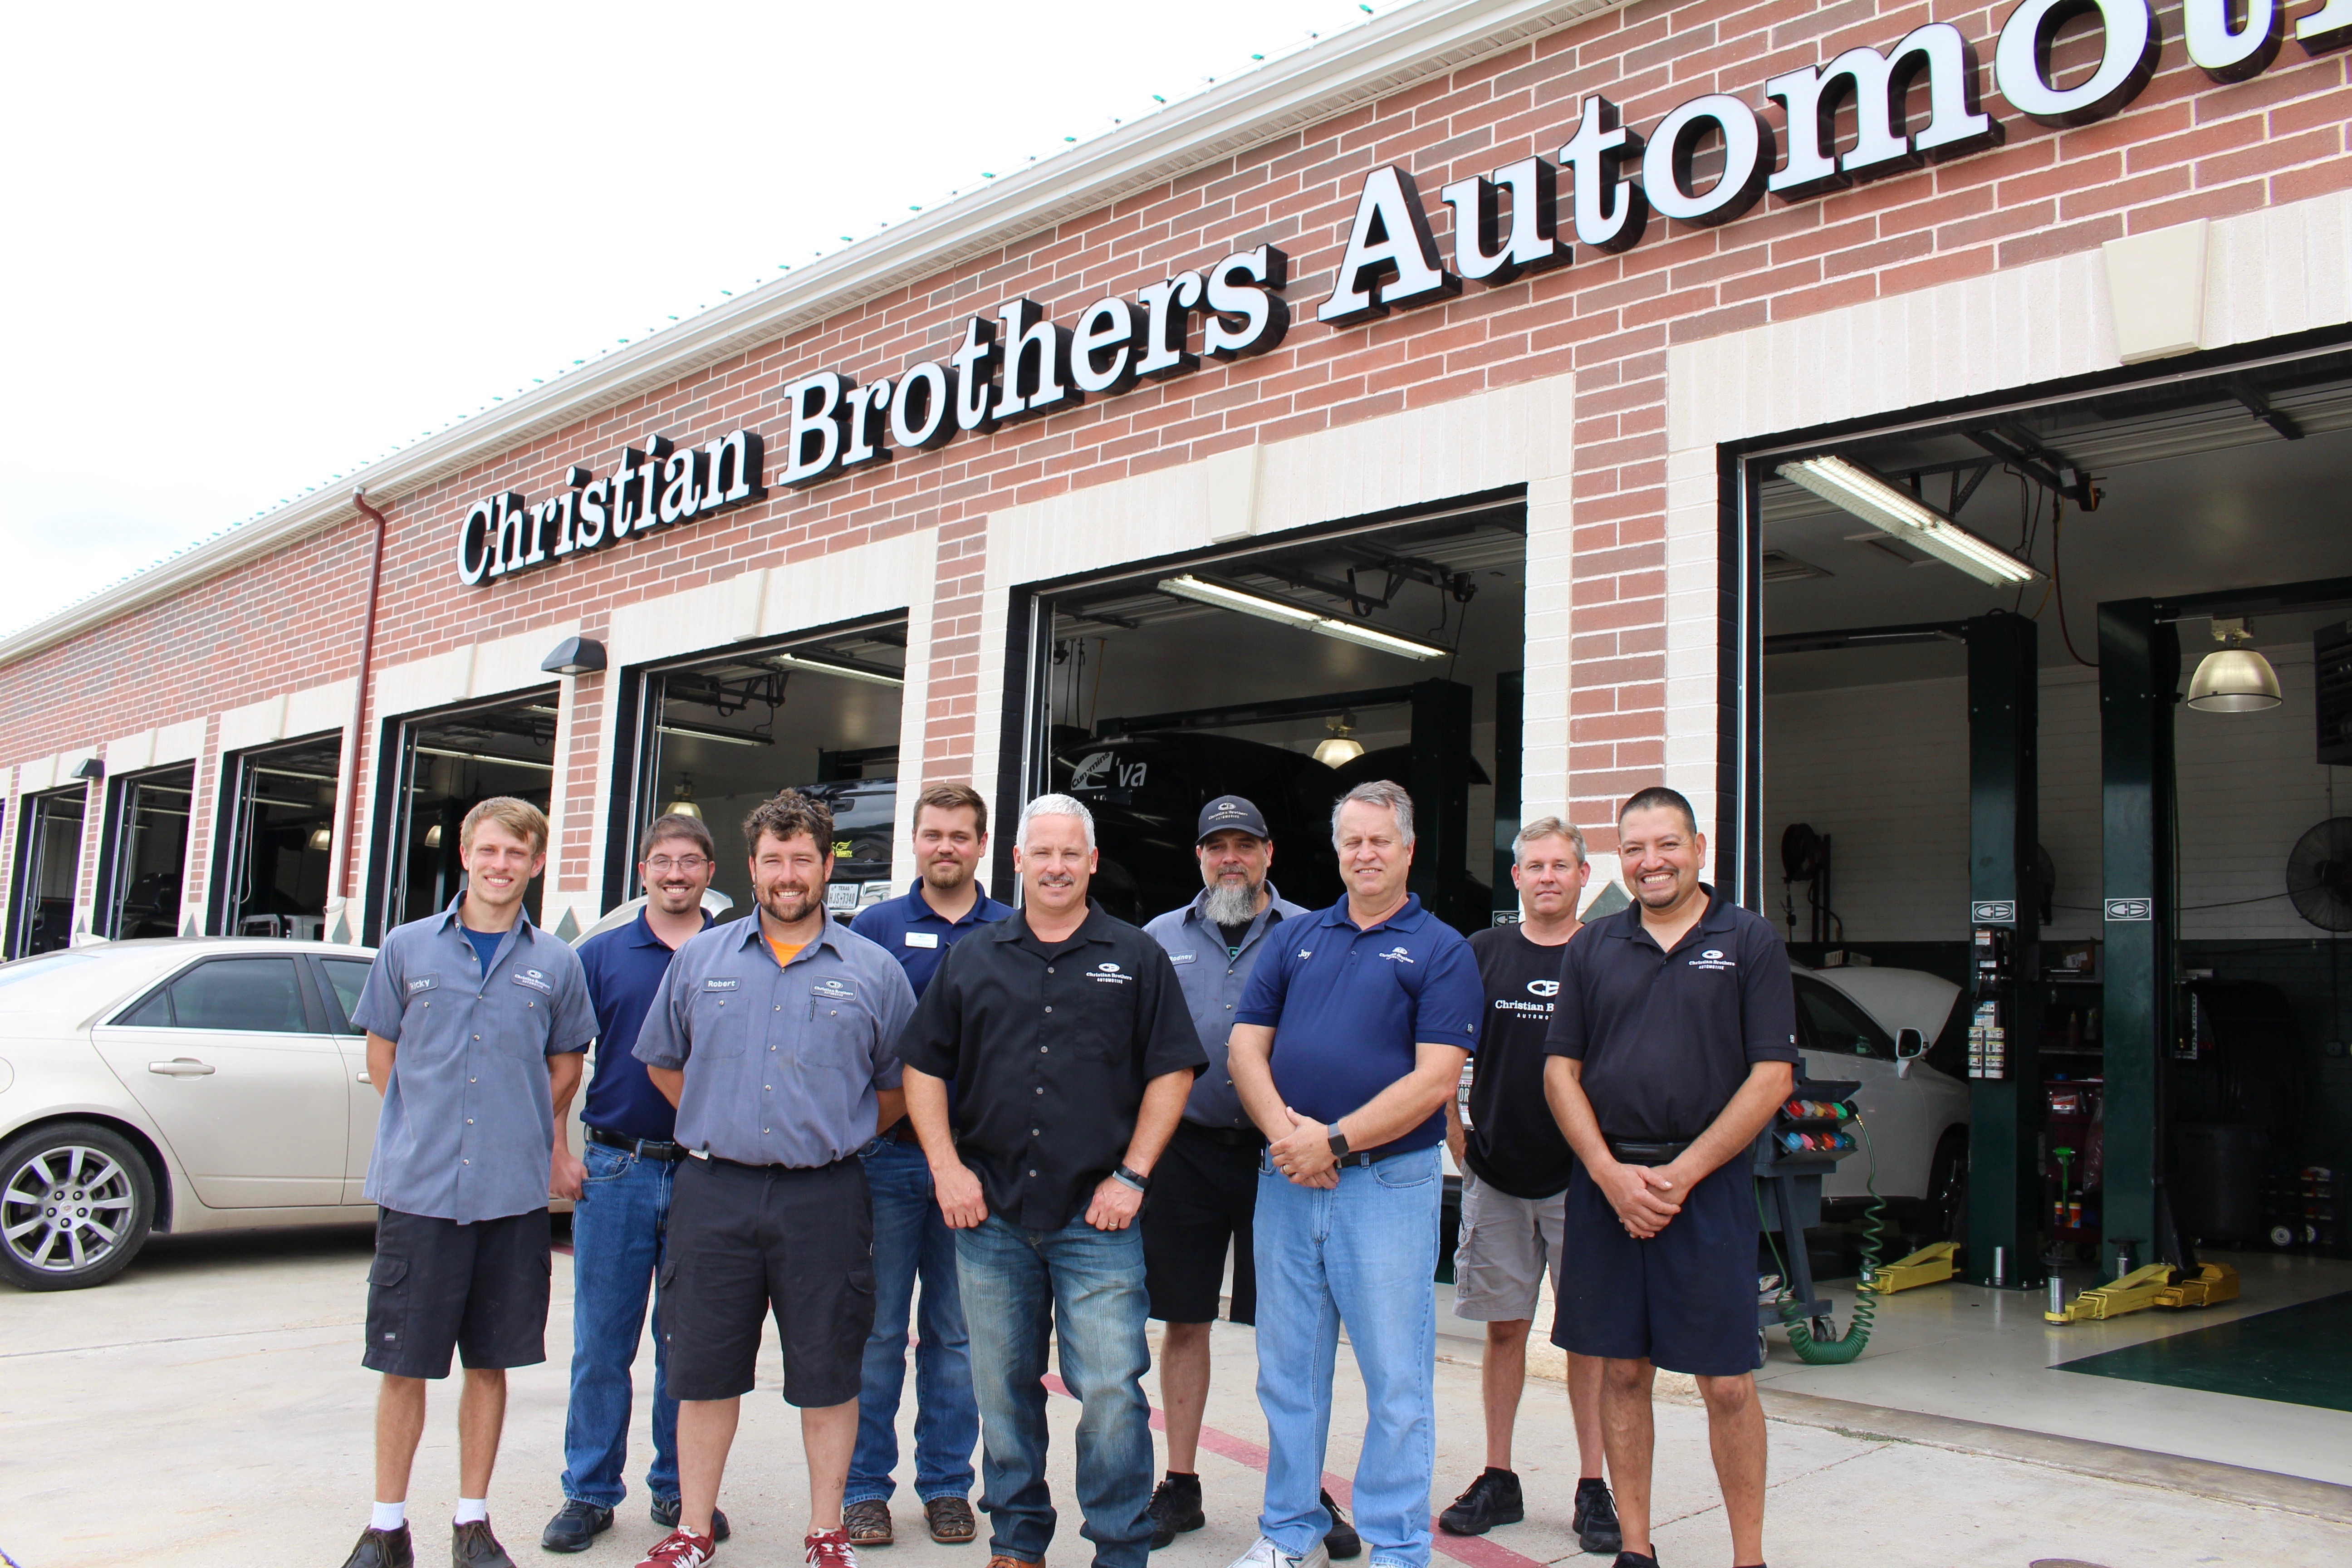 Christian Brothers Automotive in Weatherford, Texas employees